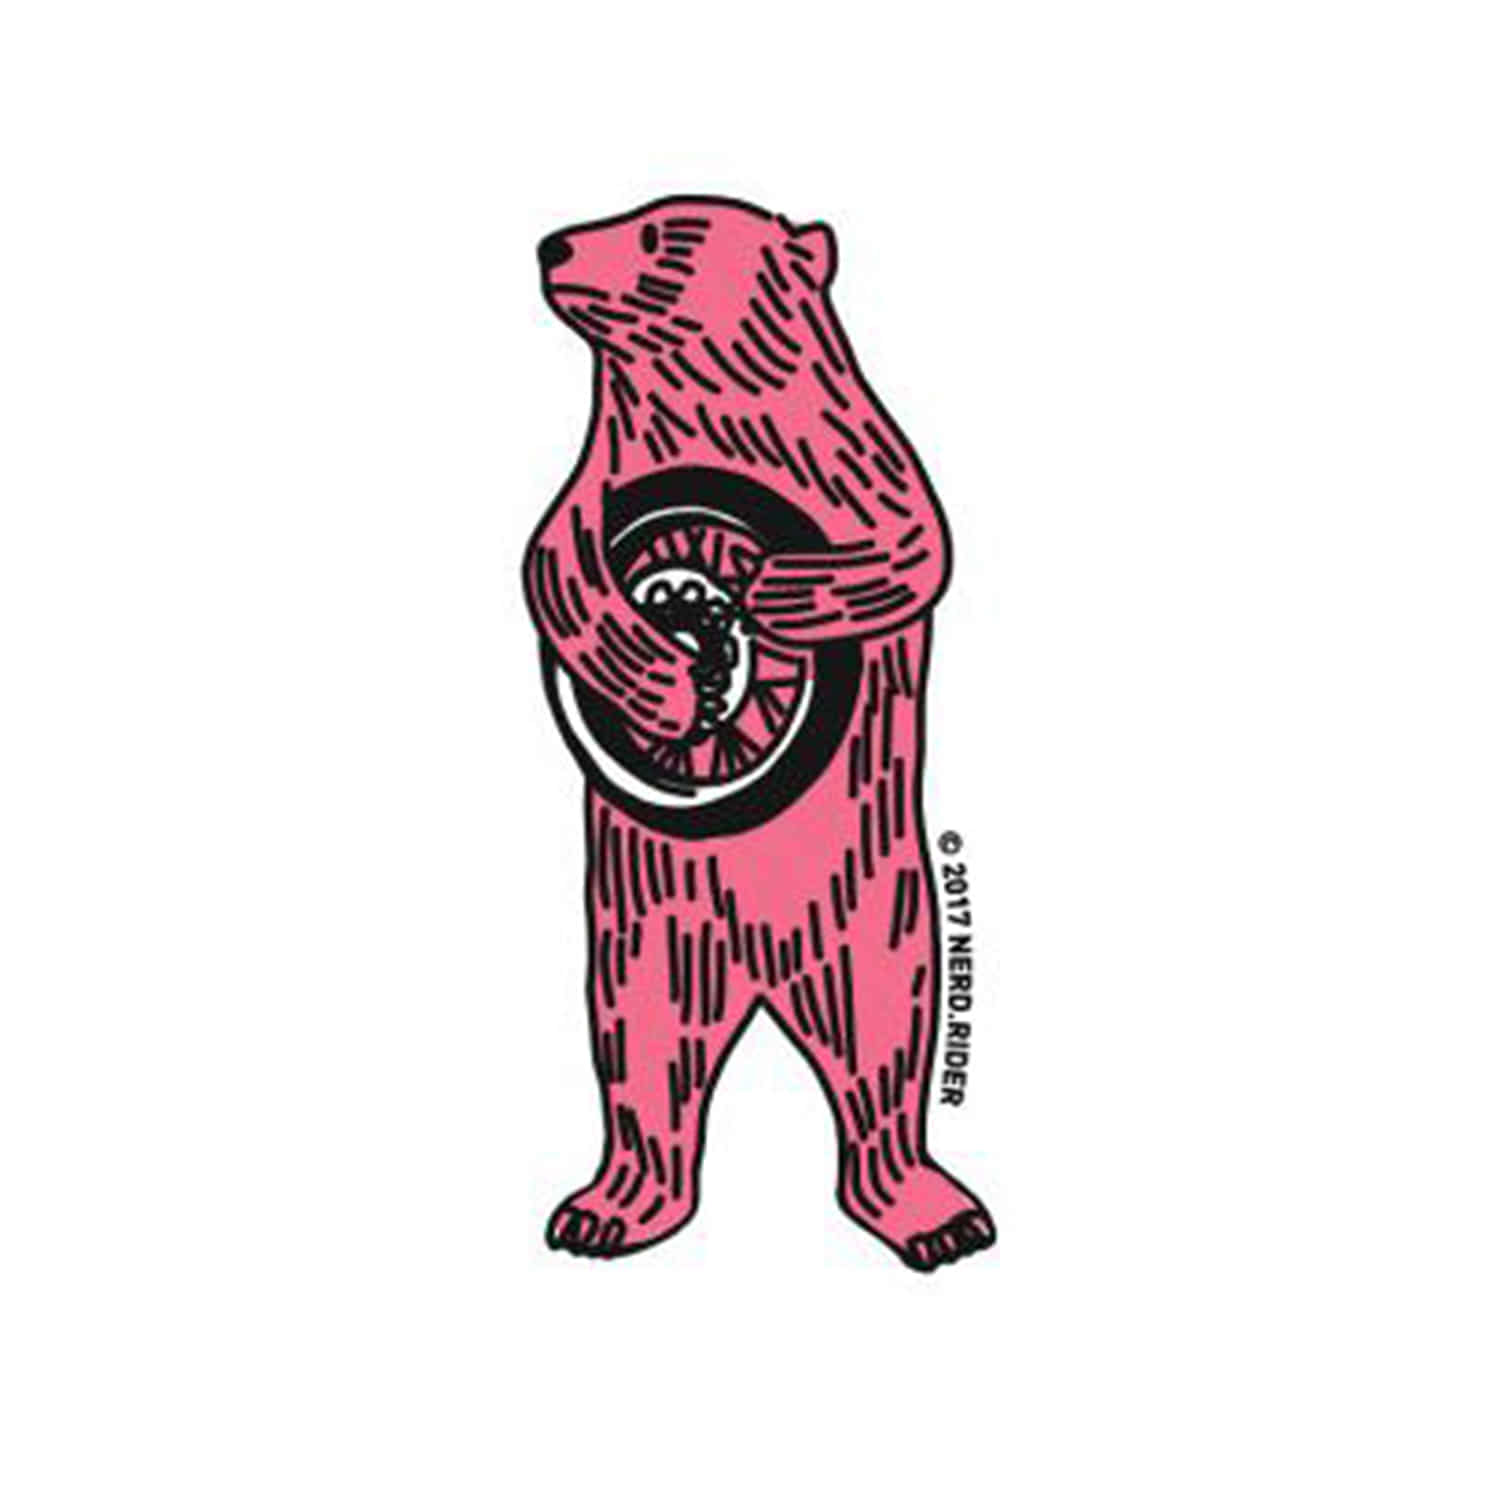 NERD - Spoke bear sticker